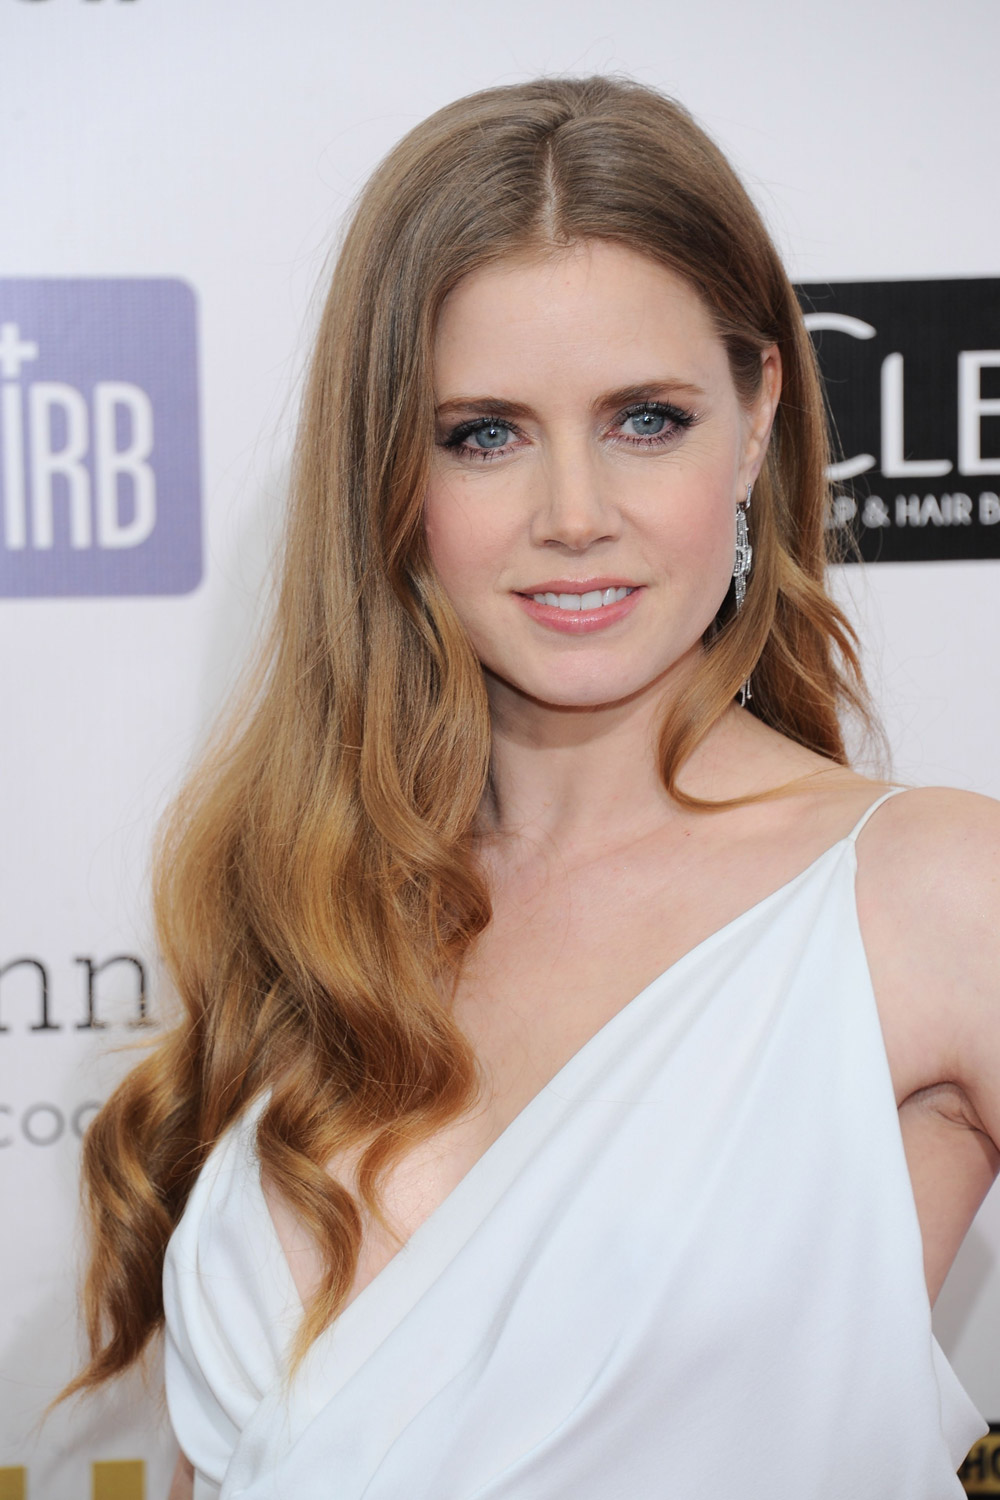 Hairstyles for round faces the best celebrity styles to inspire you urmus Image collections